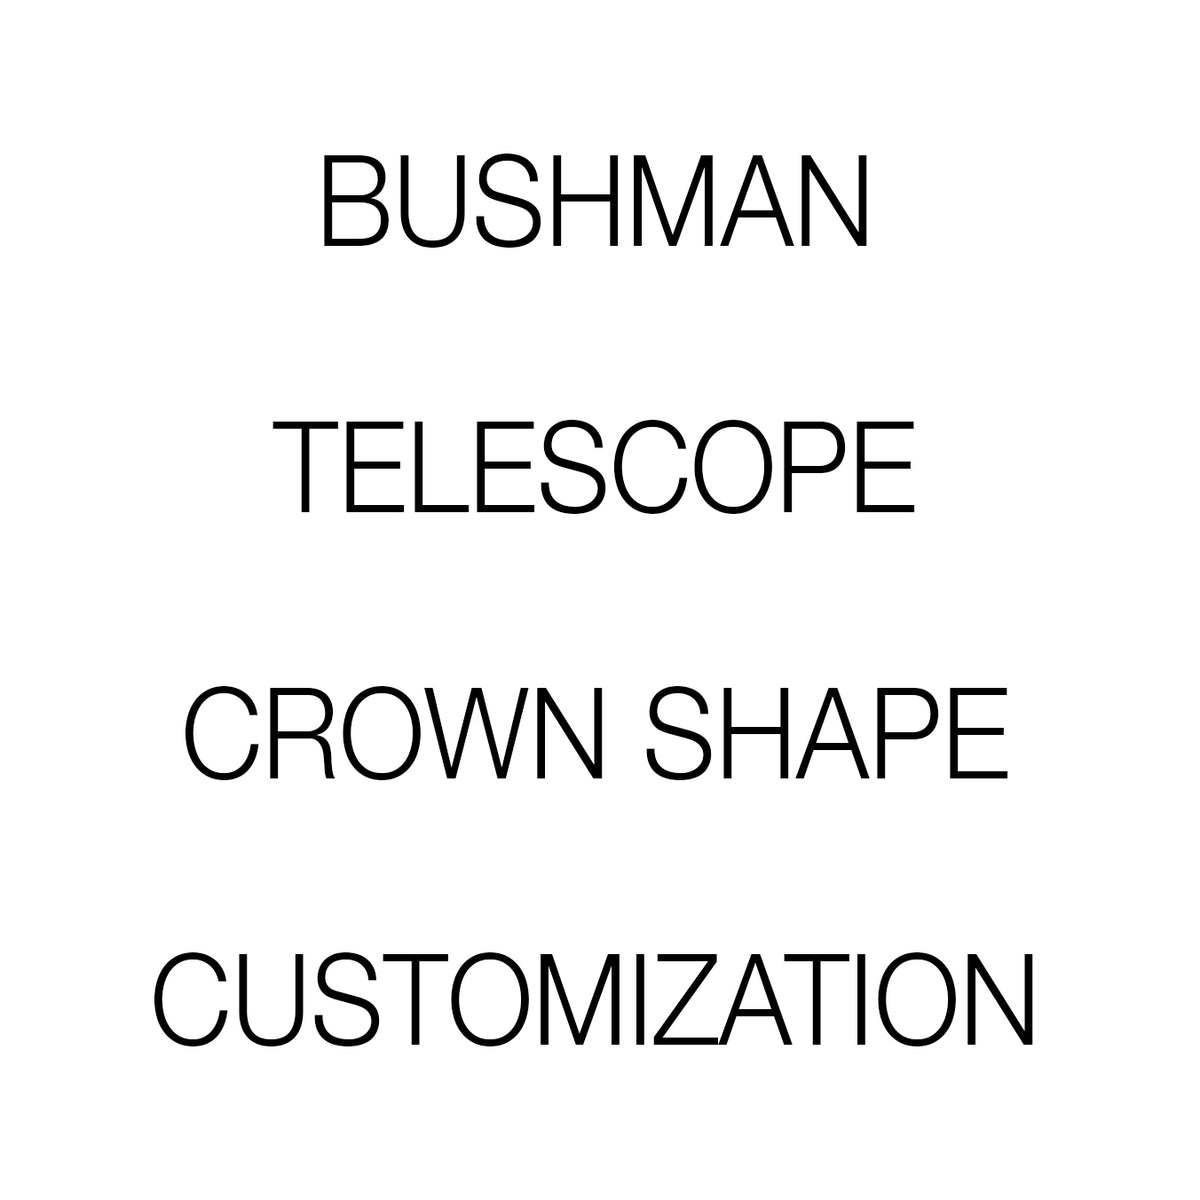 bushman ~ telescope shape customization